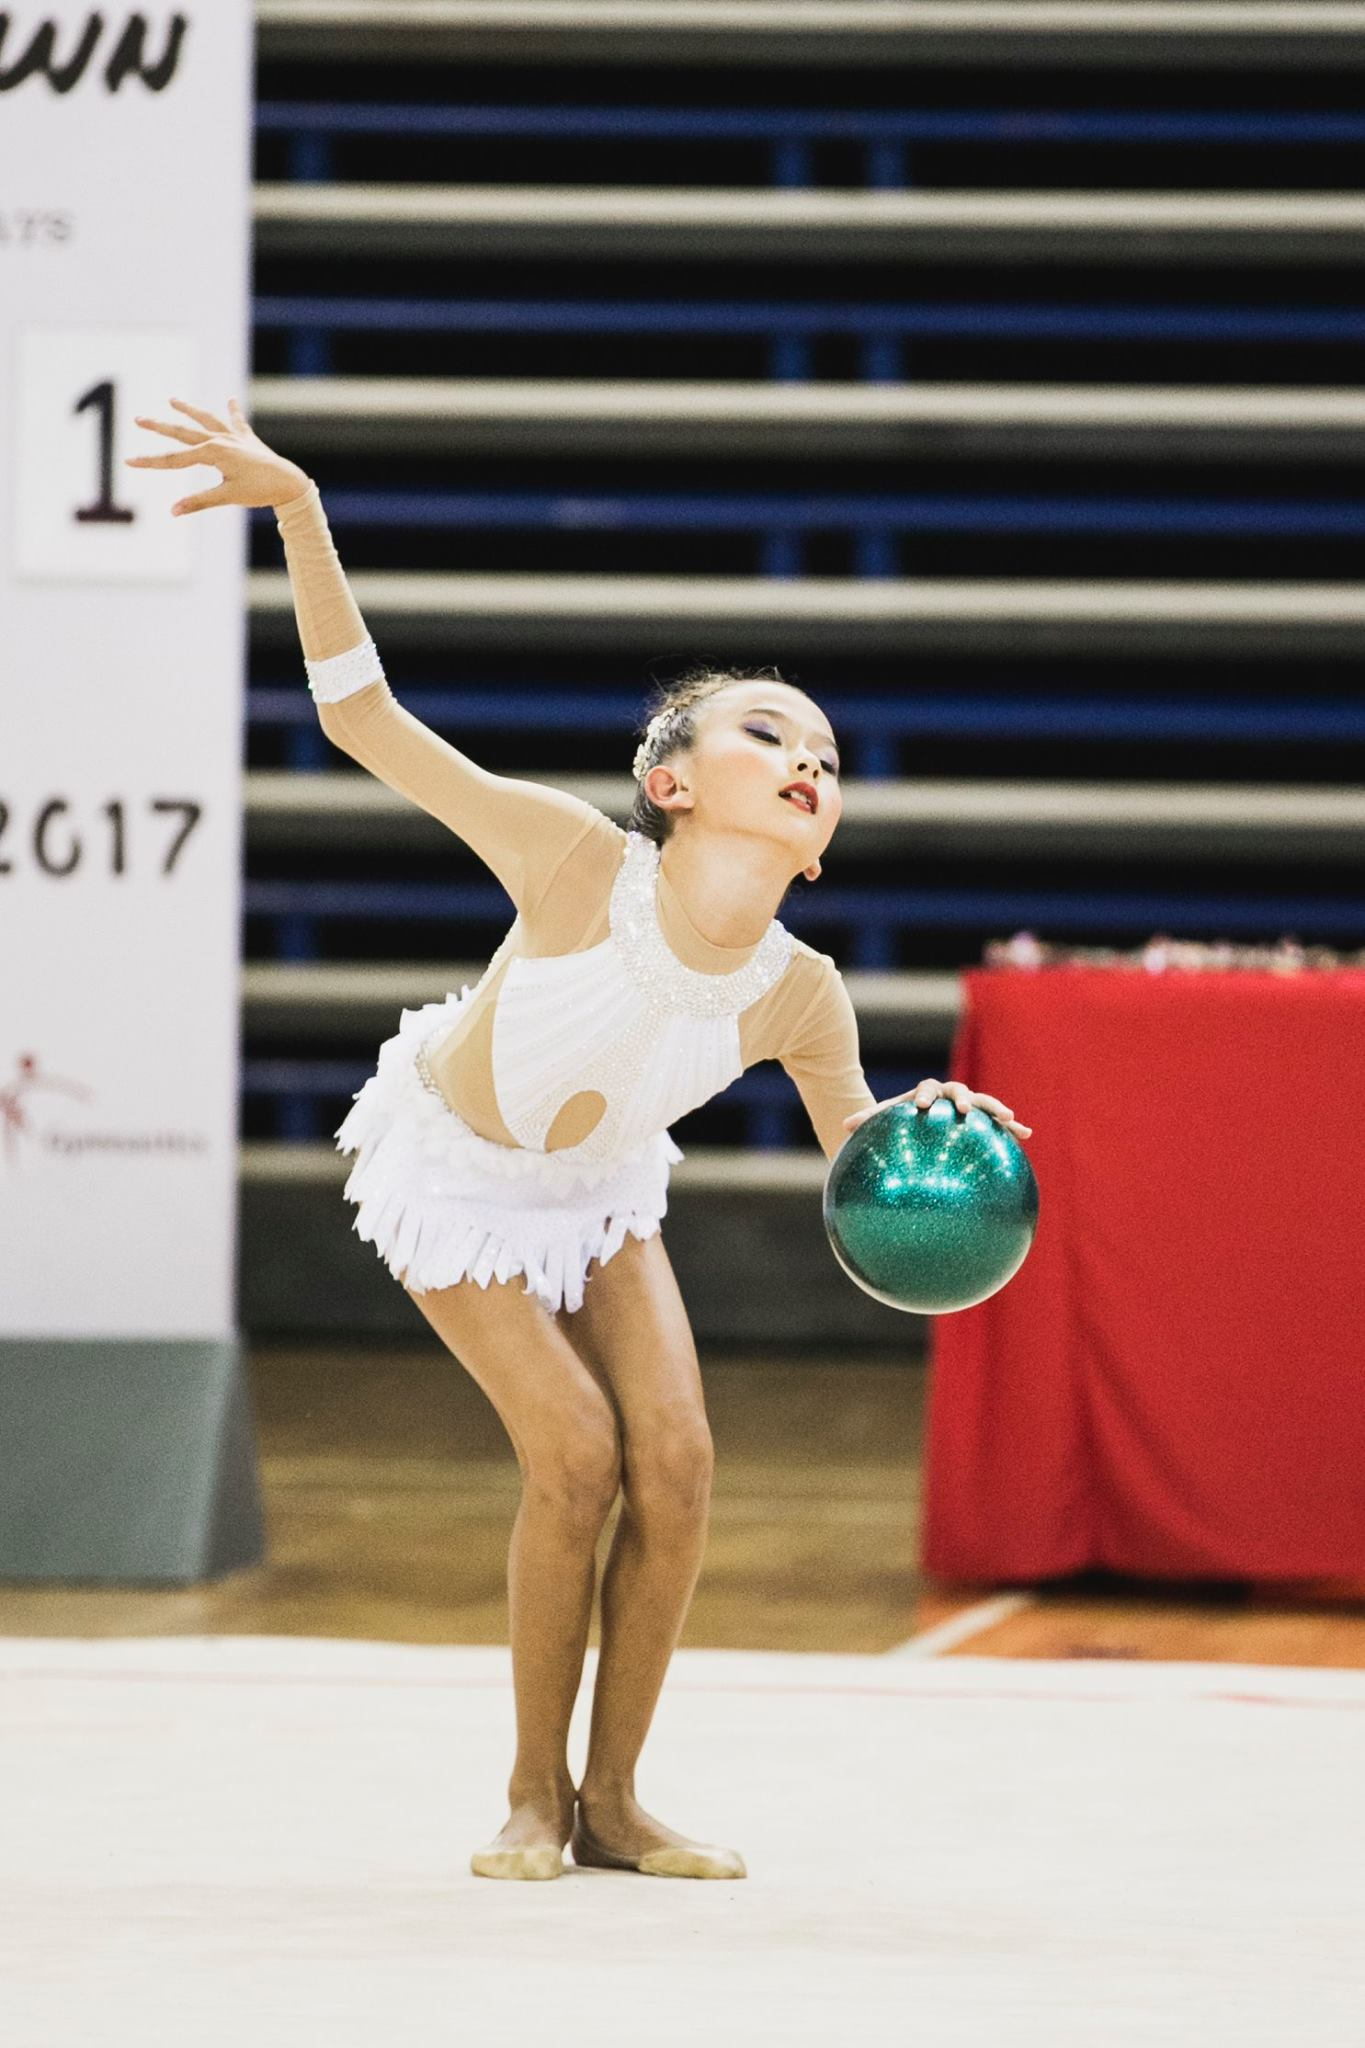 9th Singapore Gymnastics National Championships 2017 40